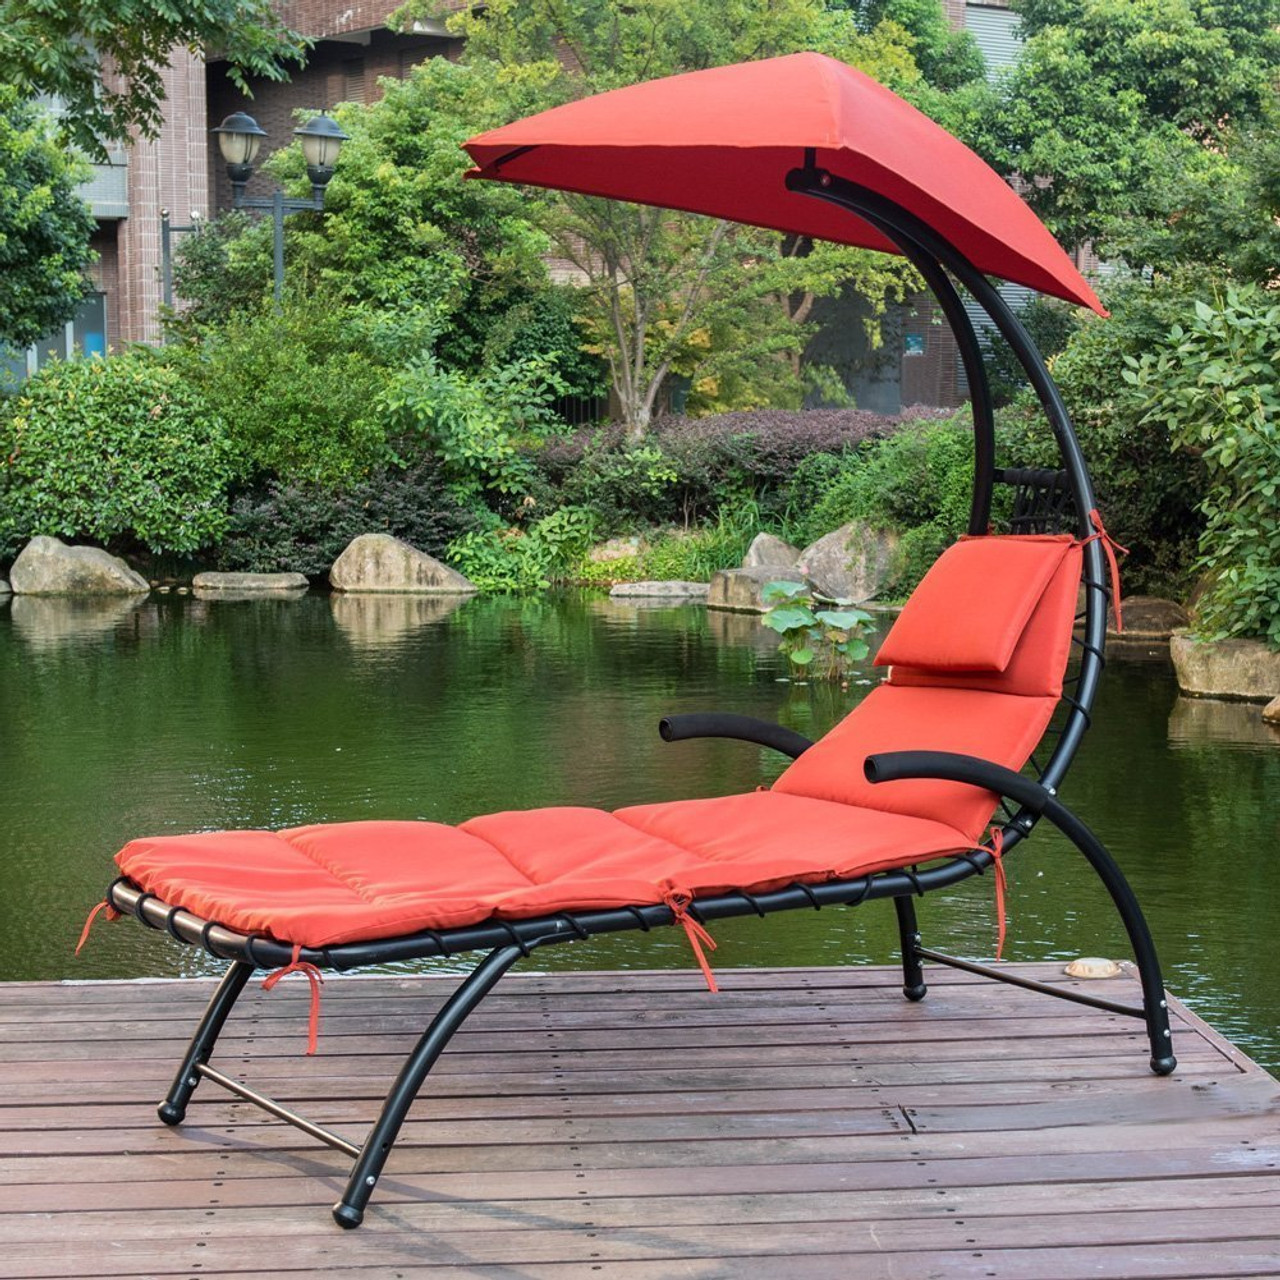 chair with shade canopy travel high tray patio dream chaise lounger sun sundale outdoor